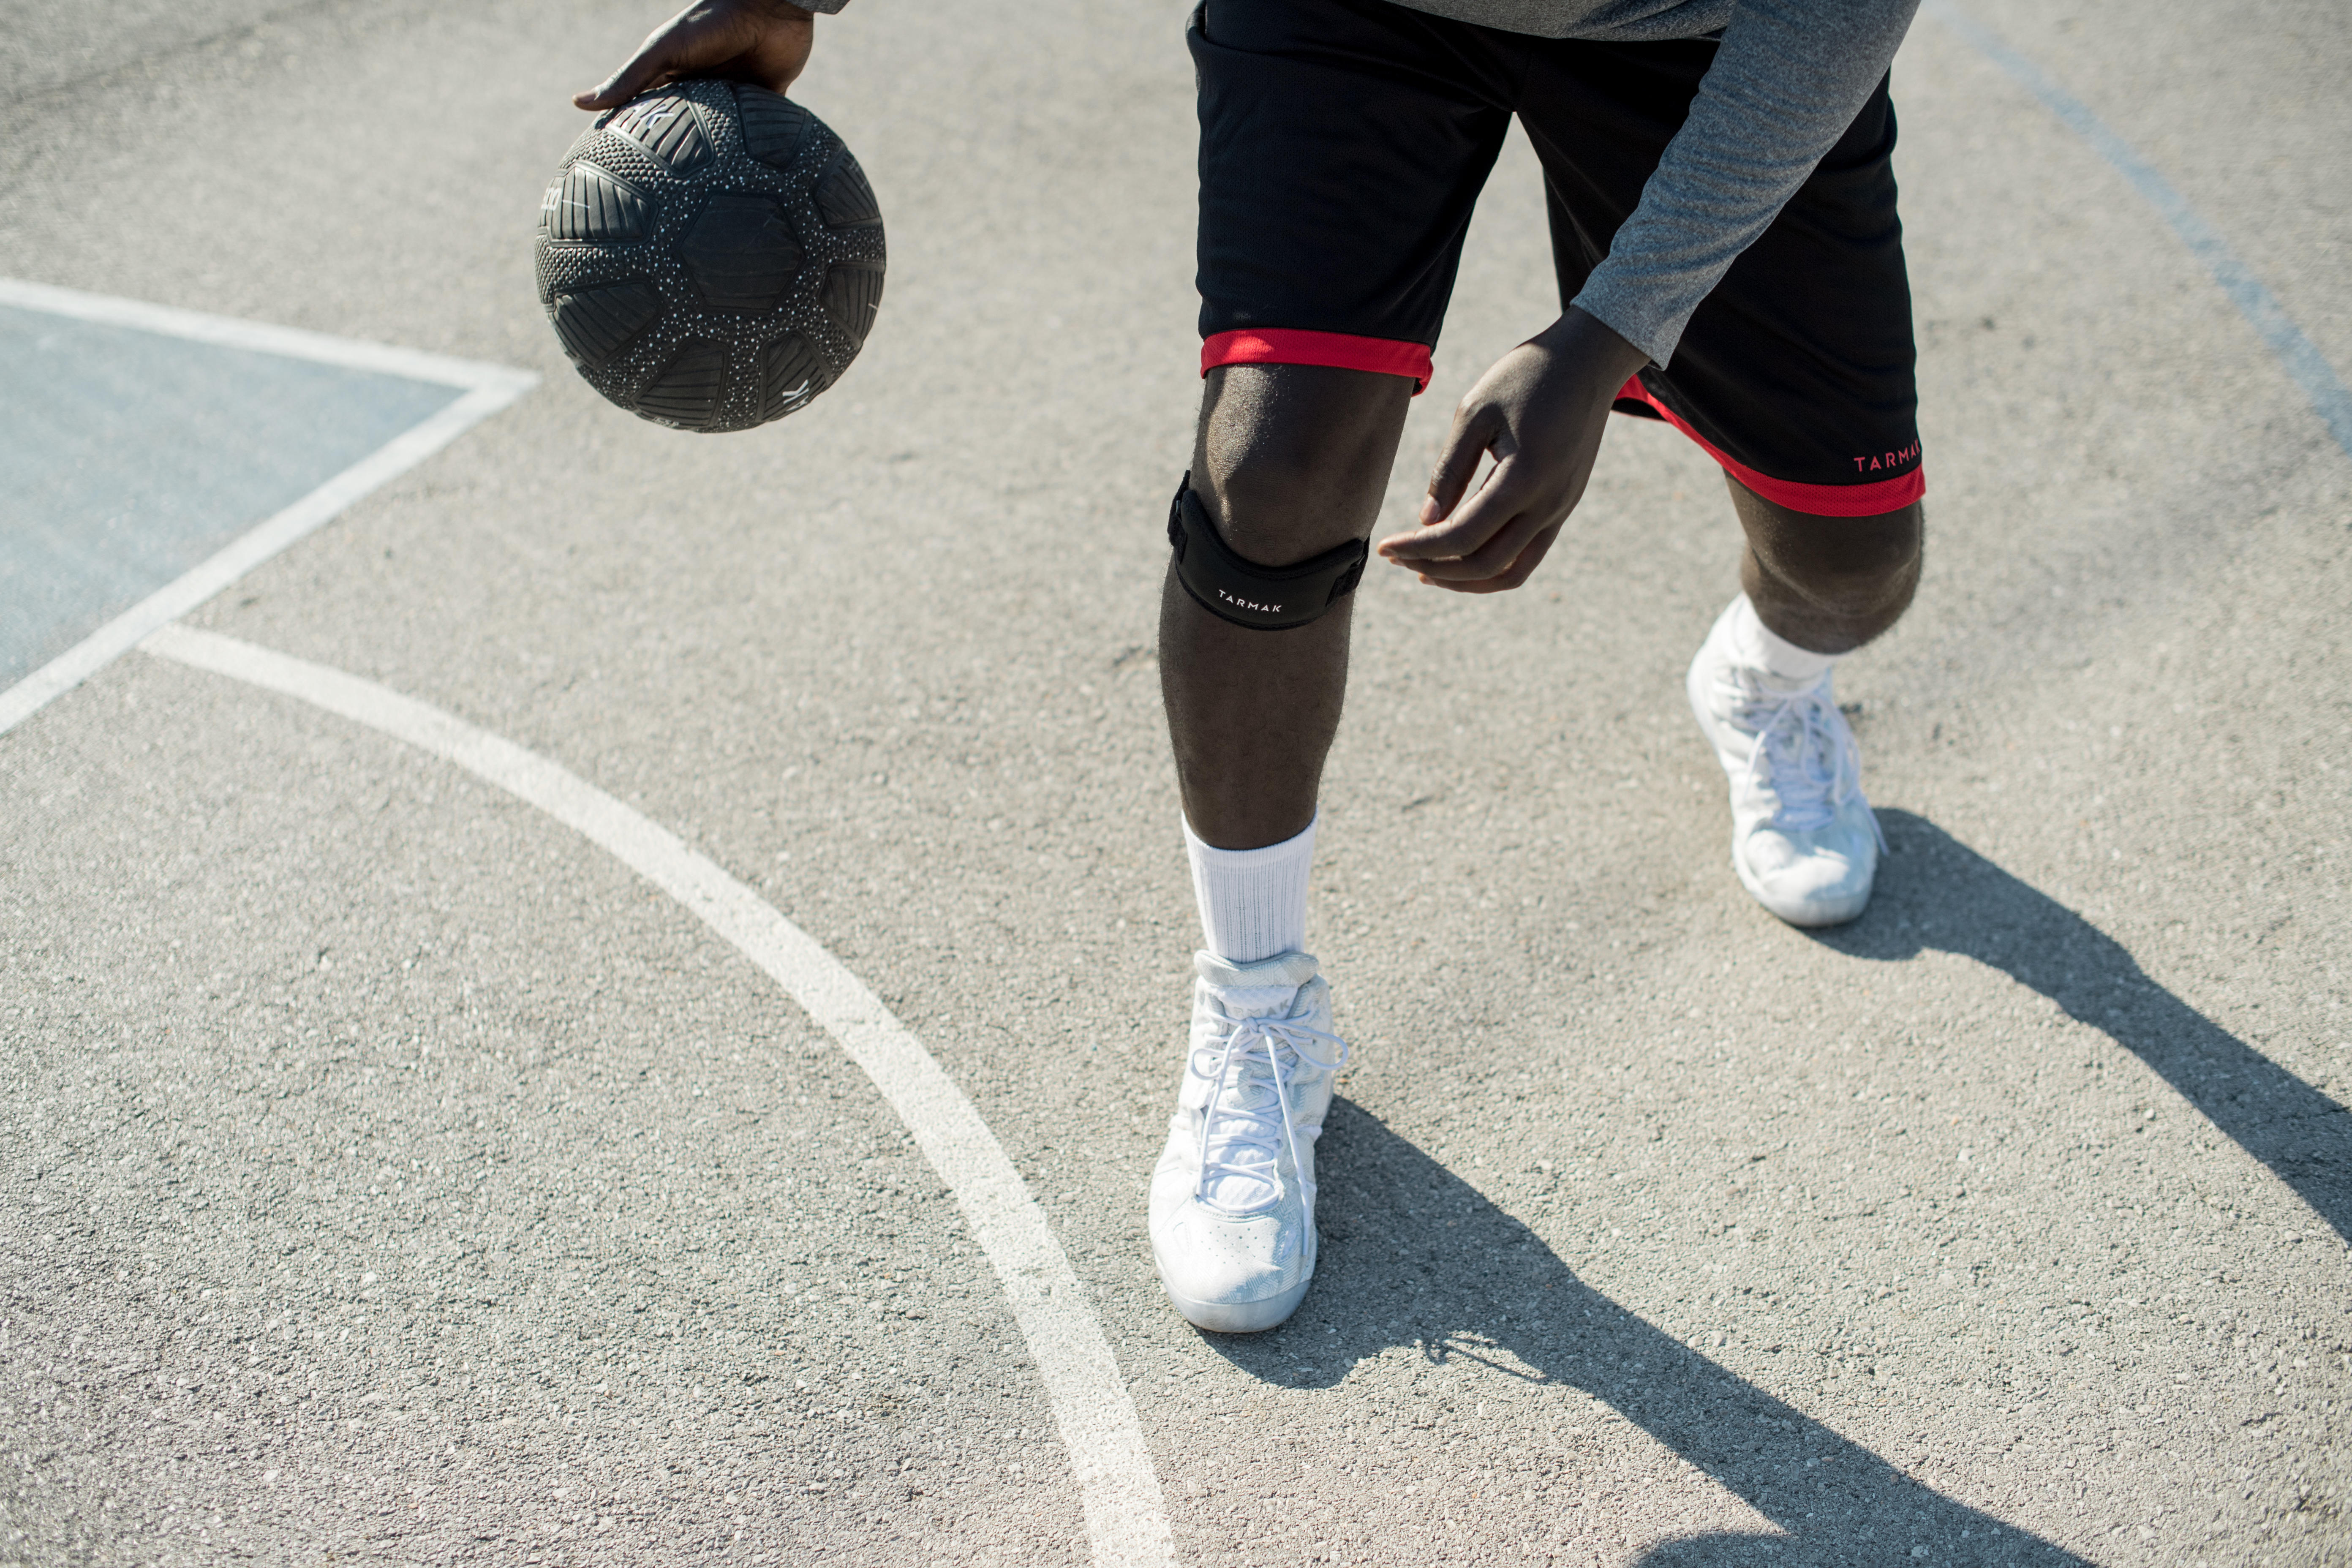 Discover basketball:agility and teamwork on all courts